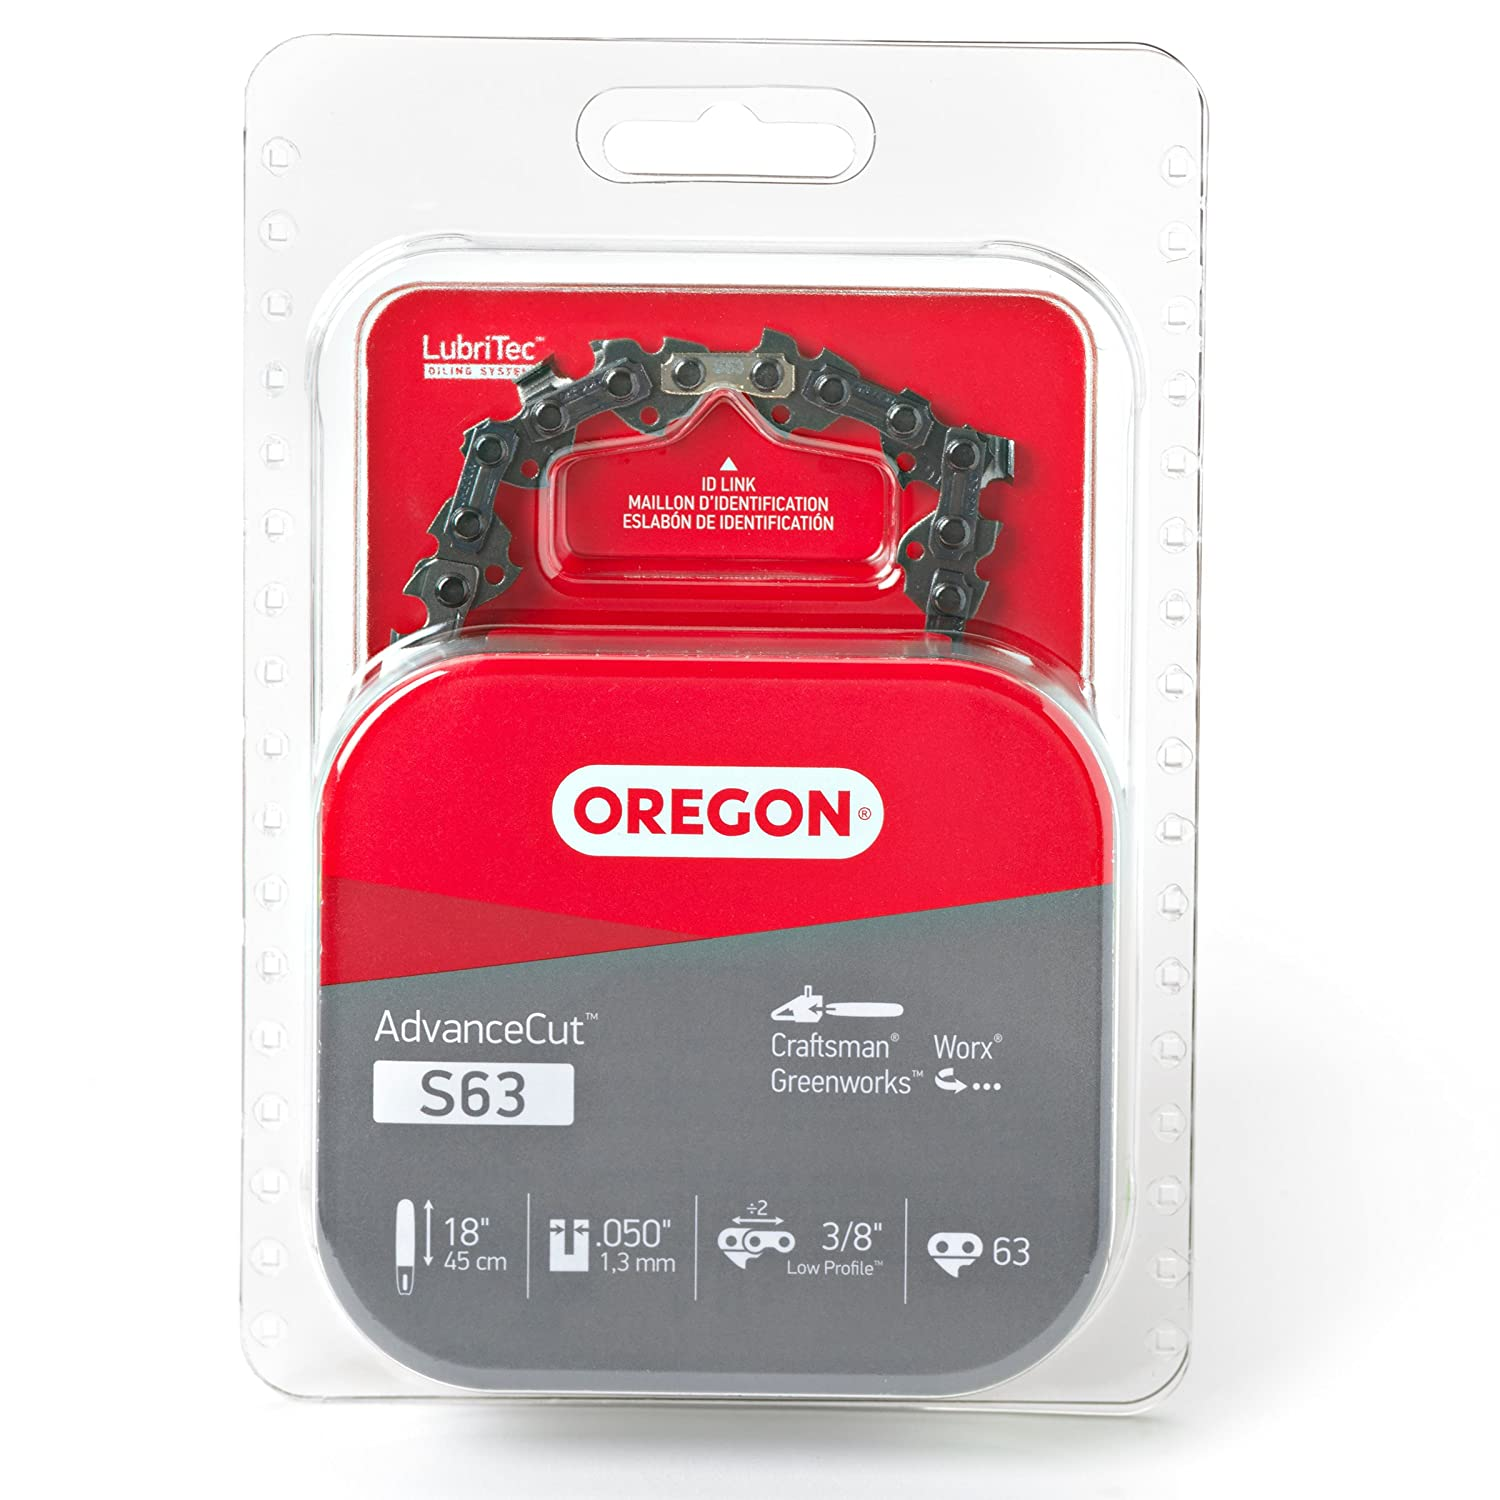 Oregon S63 AdvanceCut 18-Inch Chainsaw Chain, Fits Craftsman, Worx, Greenworks, Grey